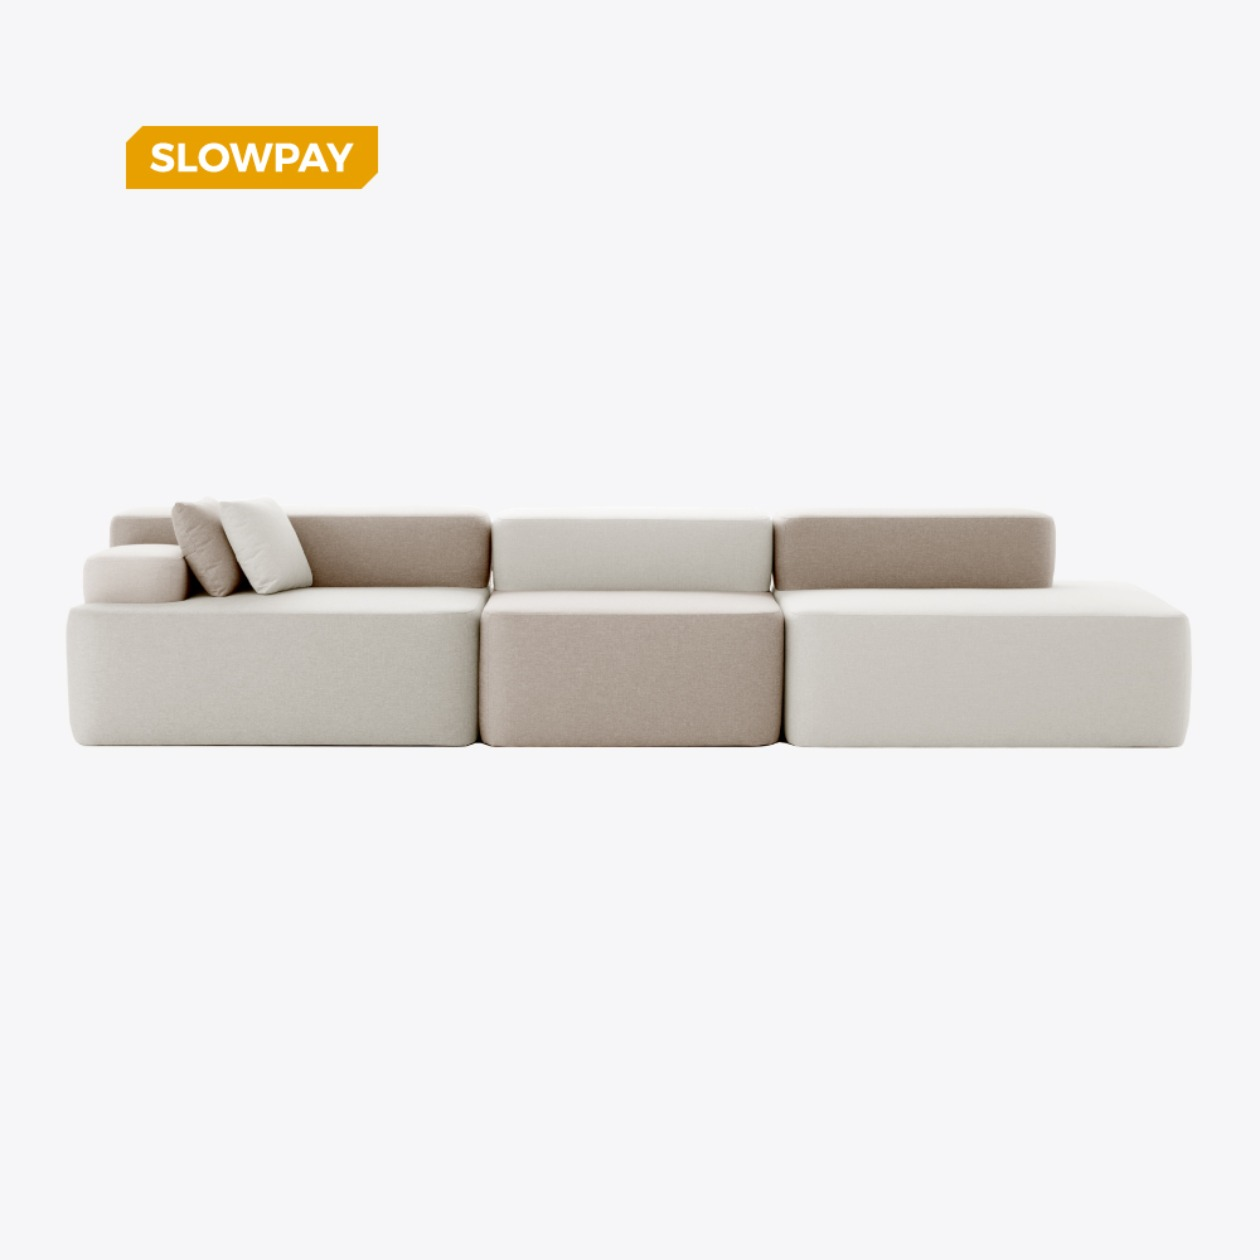 [SLOW PAY] ABLE SOFA A+B+C